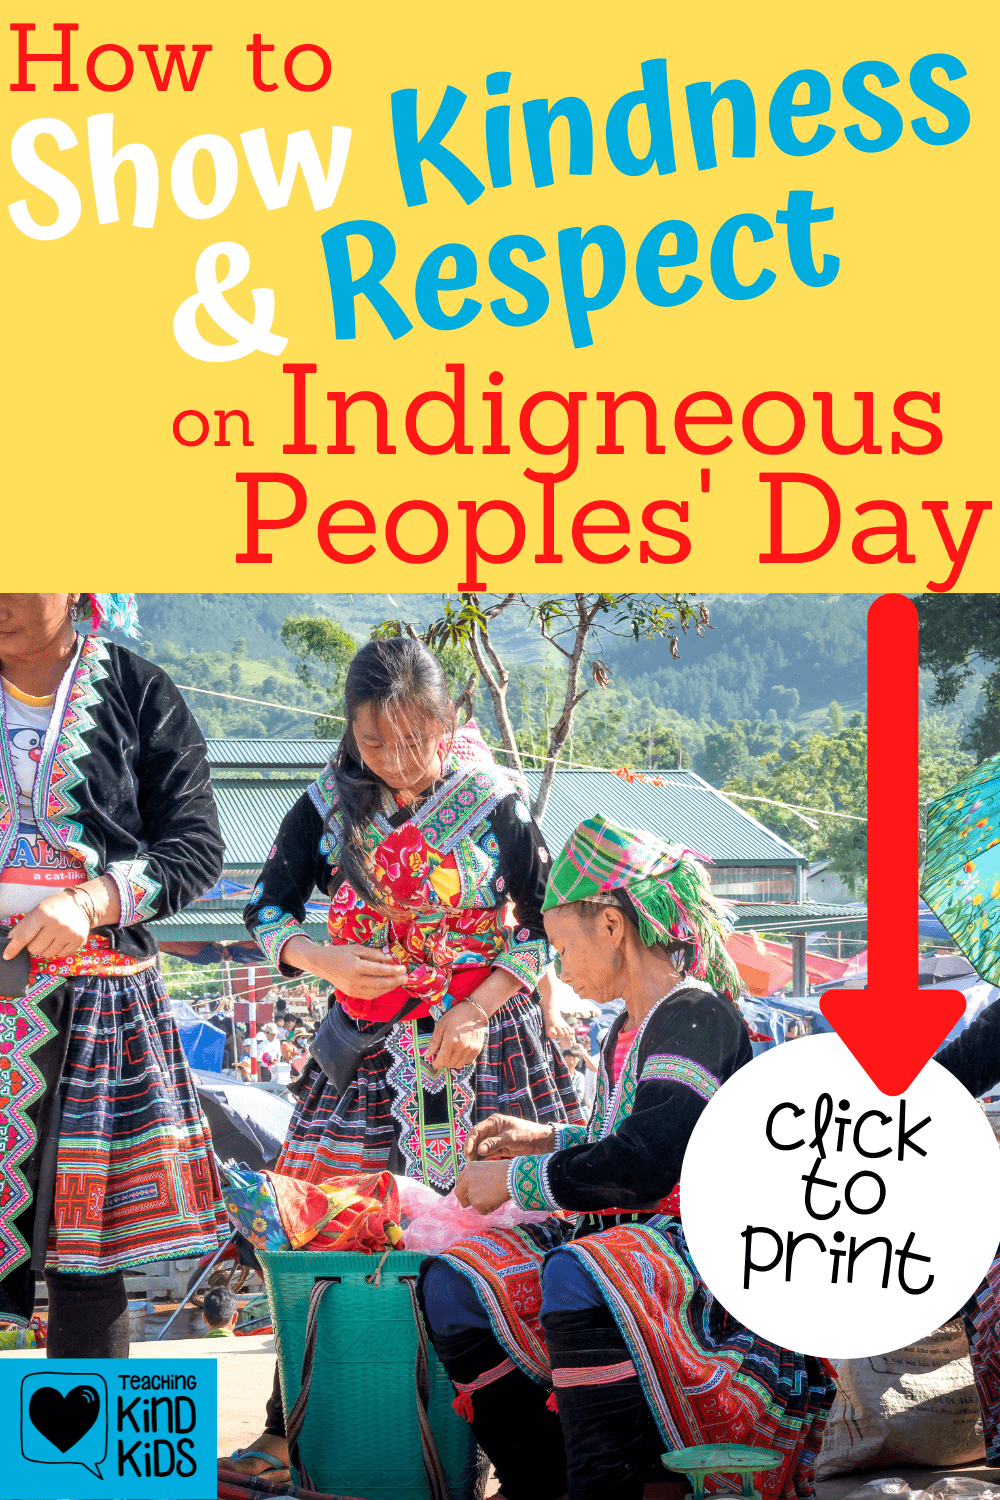 Honor and celebrate Indigenous Peoples' Day with this free printable to help students understand whose land they're living on in a respectful and kind way.